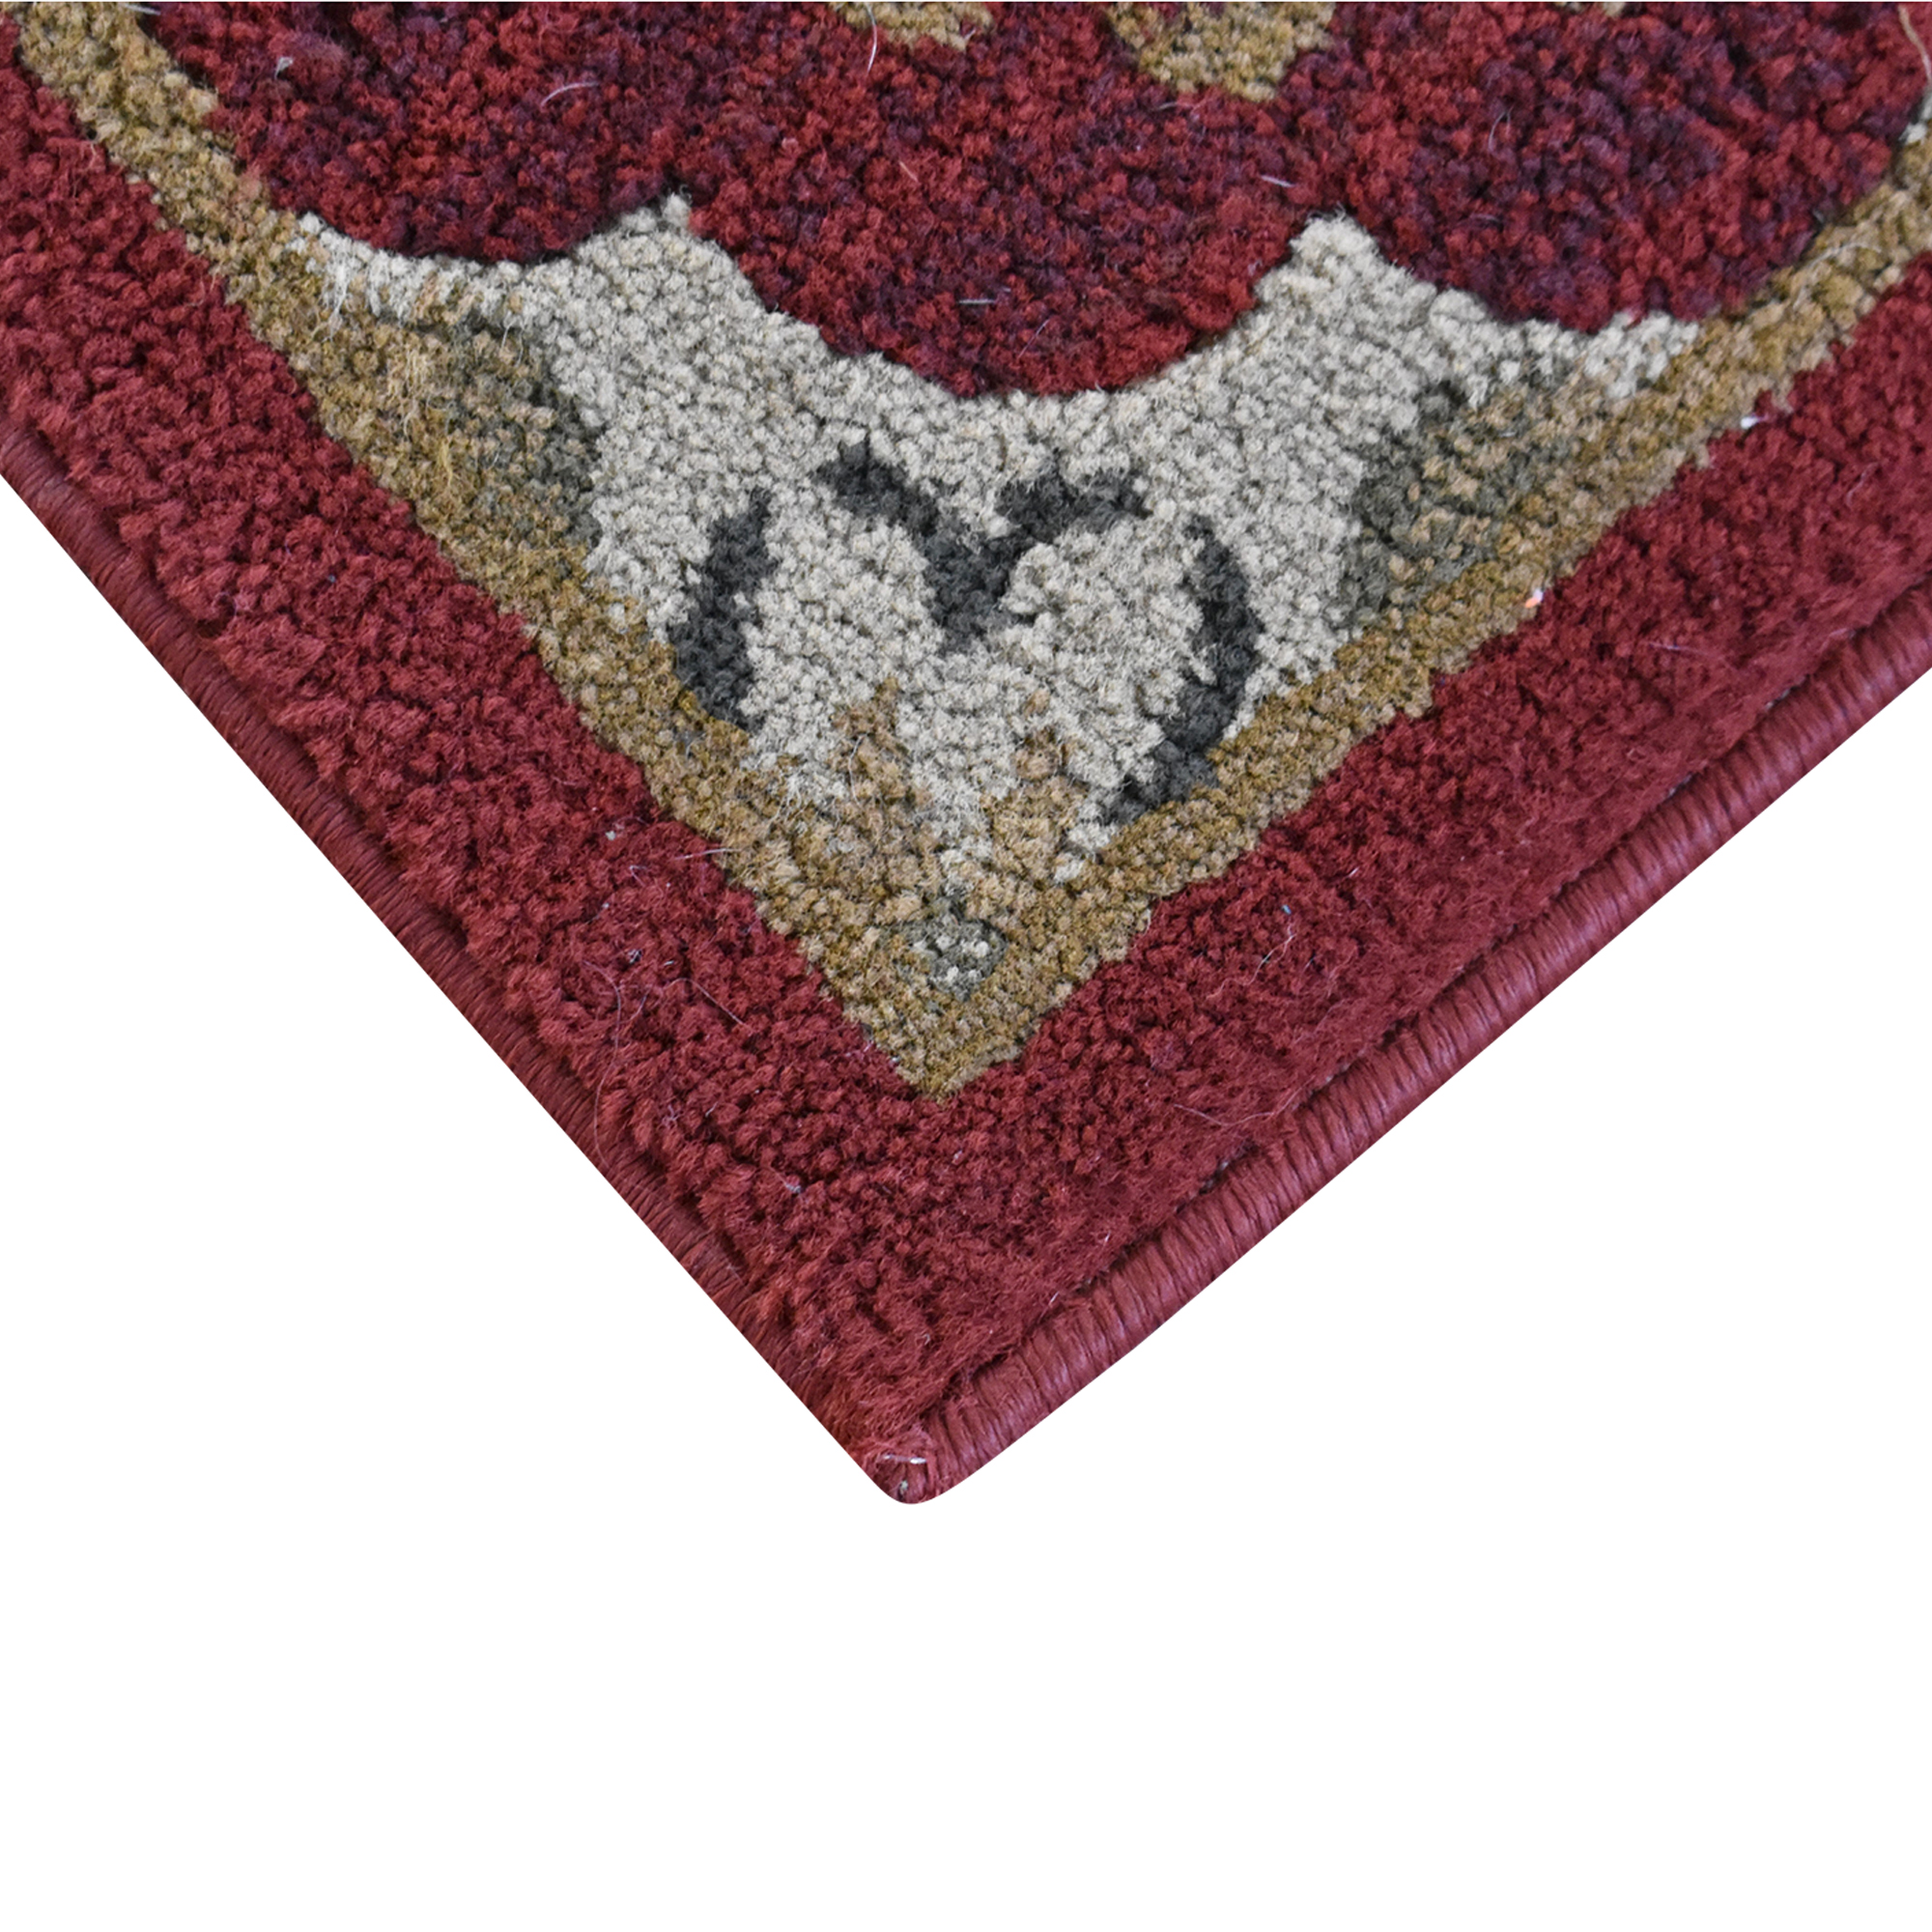 Fiezy Rugs Fiezy Rugs Keystone Collection Area Rug nyc